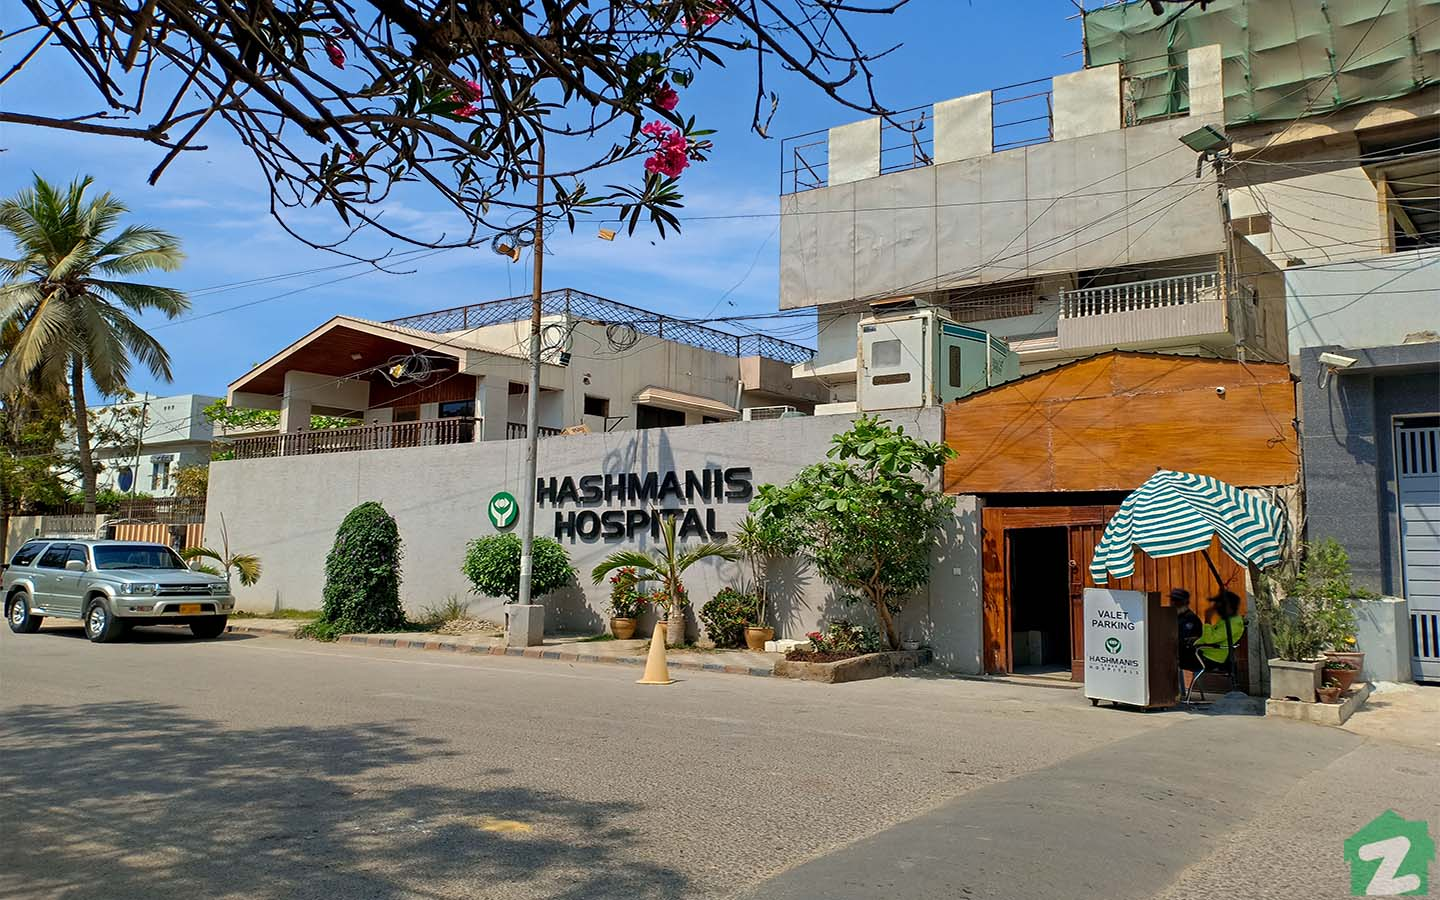 Hashmani's Hospital is popular for eye care.